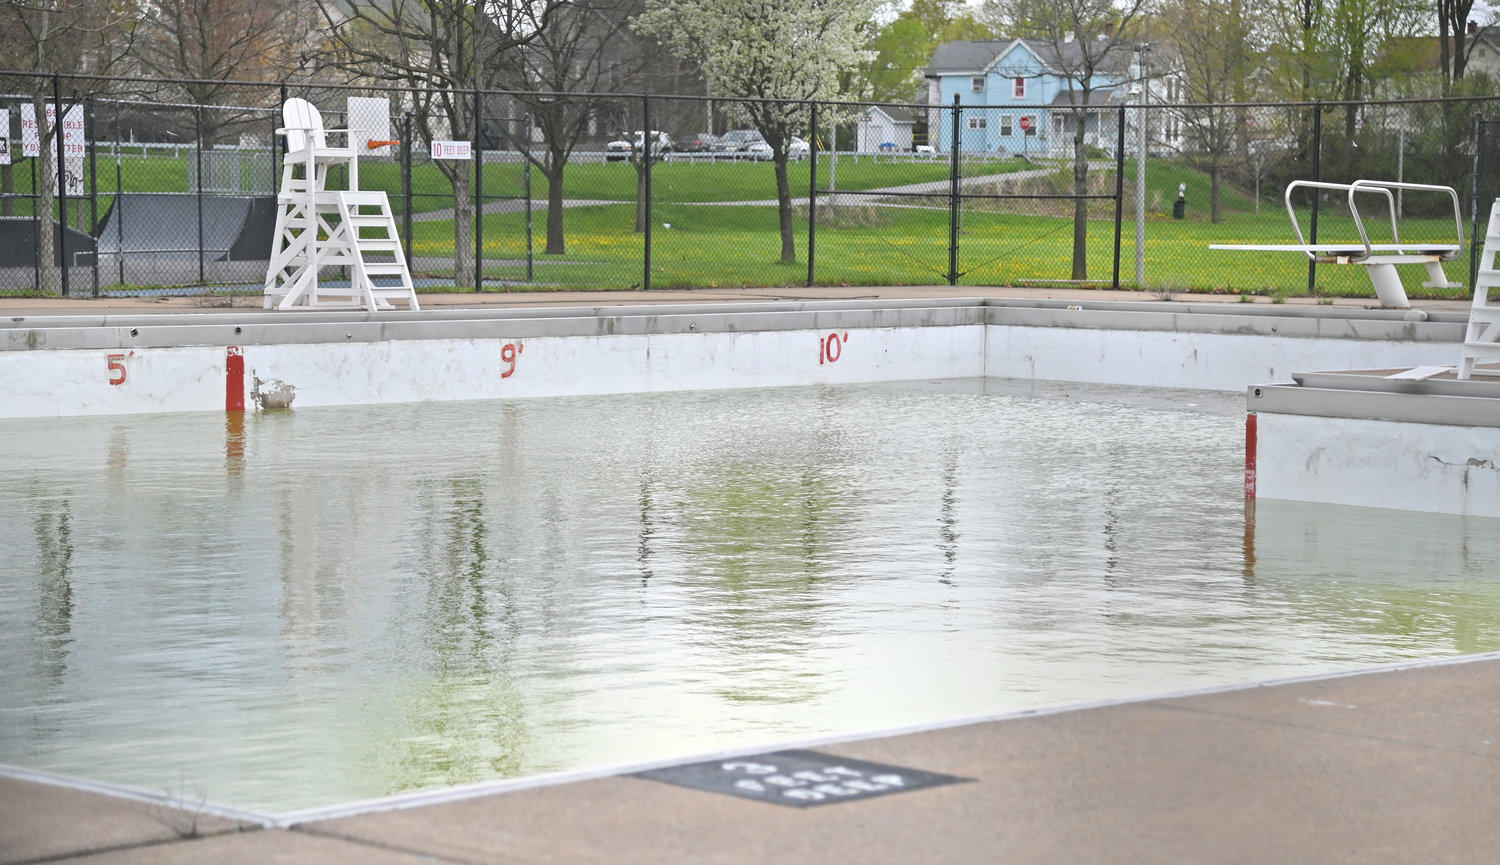 NOT YET READY TO DIVE INTO SUMMER — Tosti Pool at Pinti Field on Sixth Street is shown on Monday. City officials say they are keeping an eye on potential chlorine issues, but it is too soon to tell, what, if any, impact the issue may have. The city is also keeping an eye out on its lifeguarding crew. A popular certification program for local guards was unavailable this year, and officials are hoping that a full complement of lifeguards will still be available. The deadline for applications for summer jobs with the city is May 15.